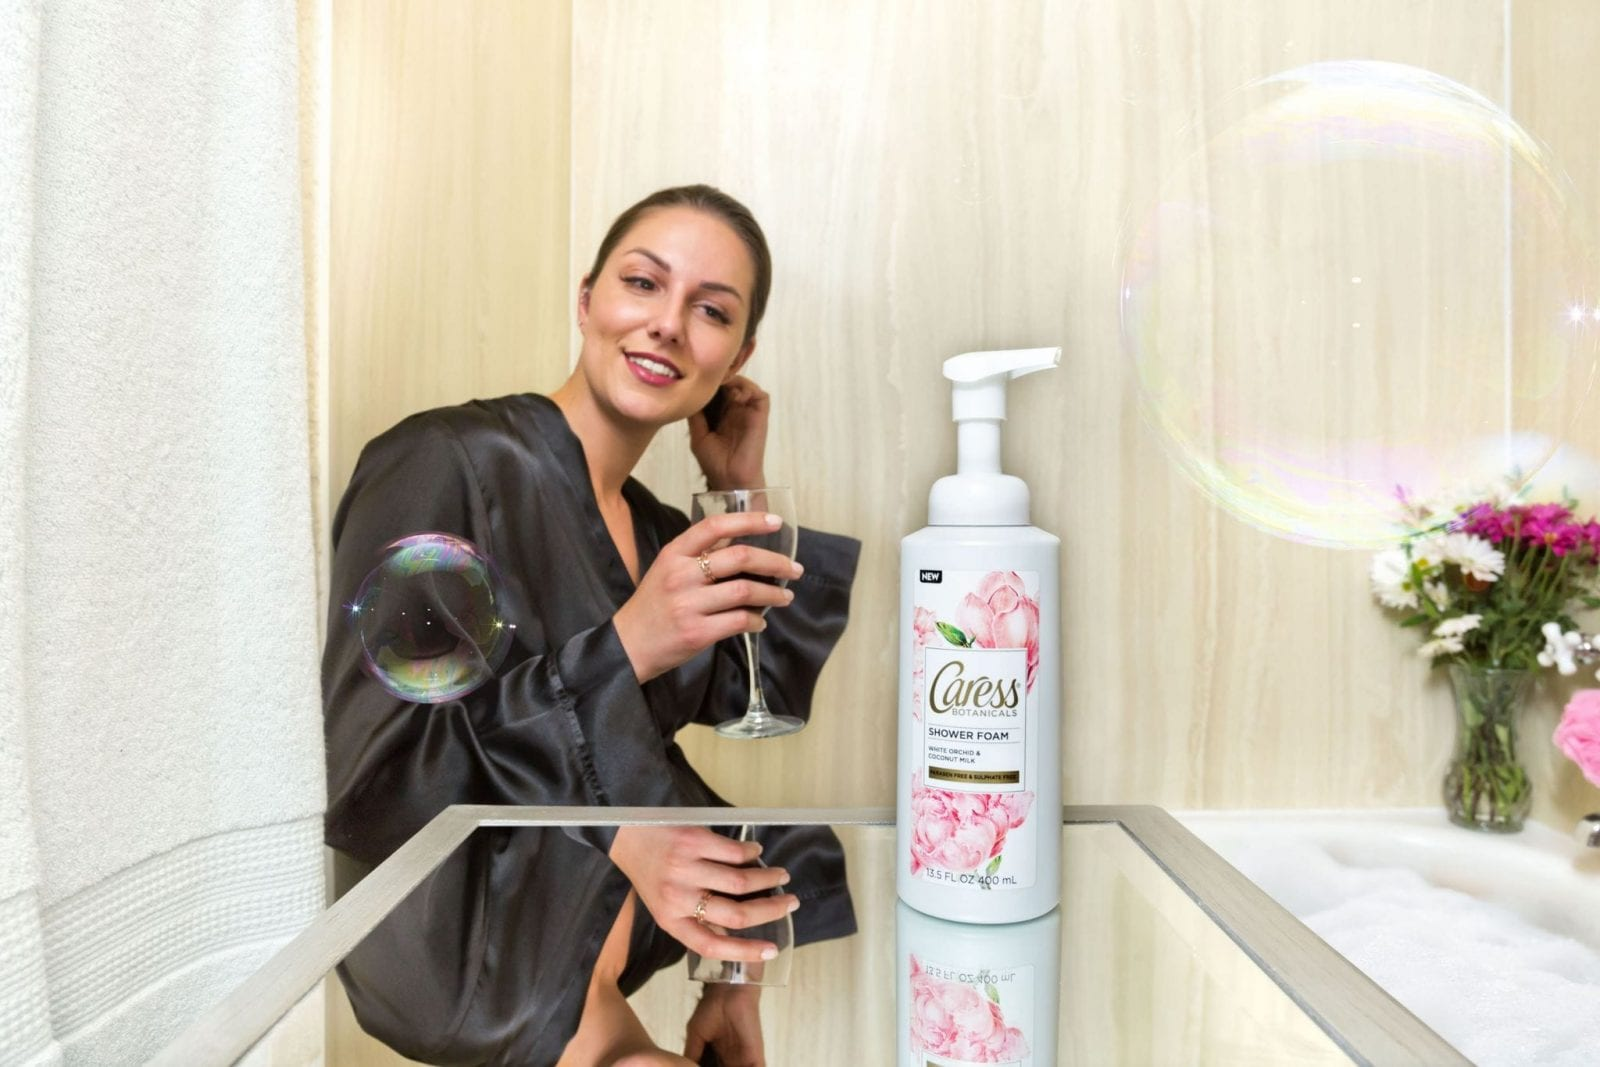 Using a New Caress Foaming Body Wash